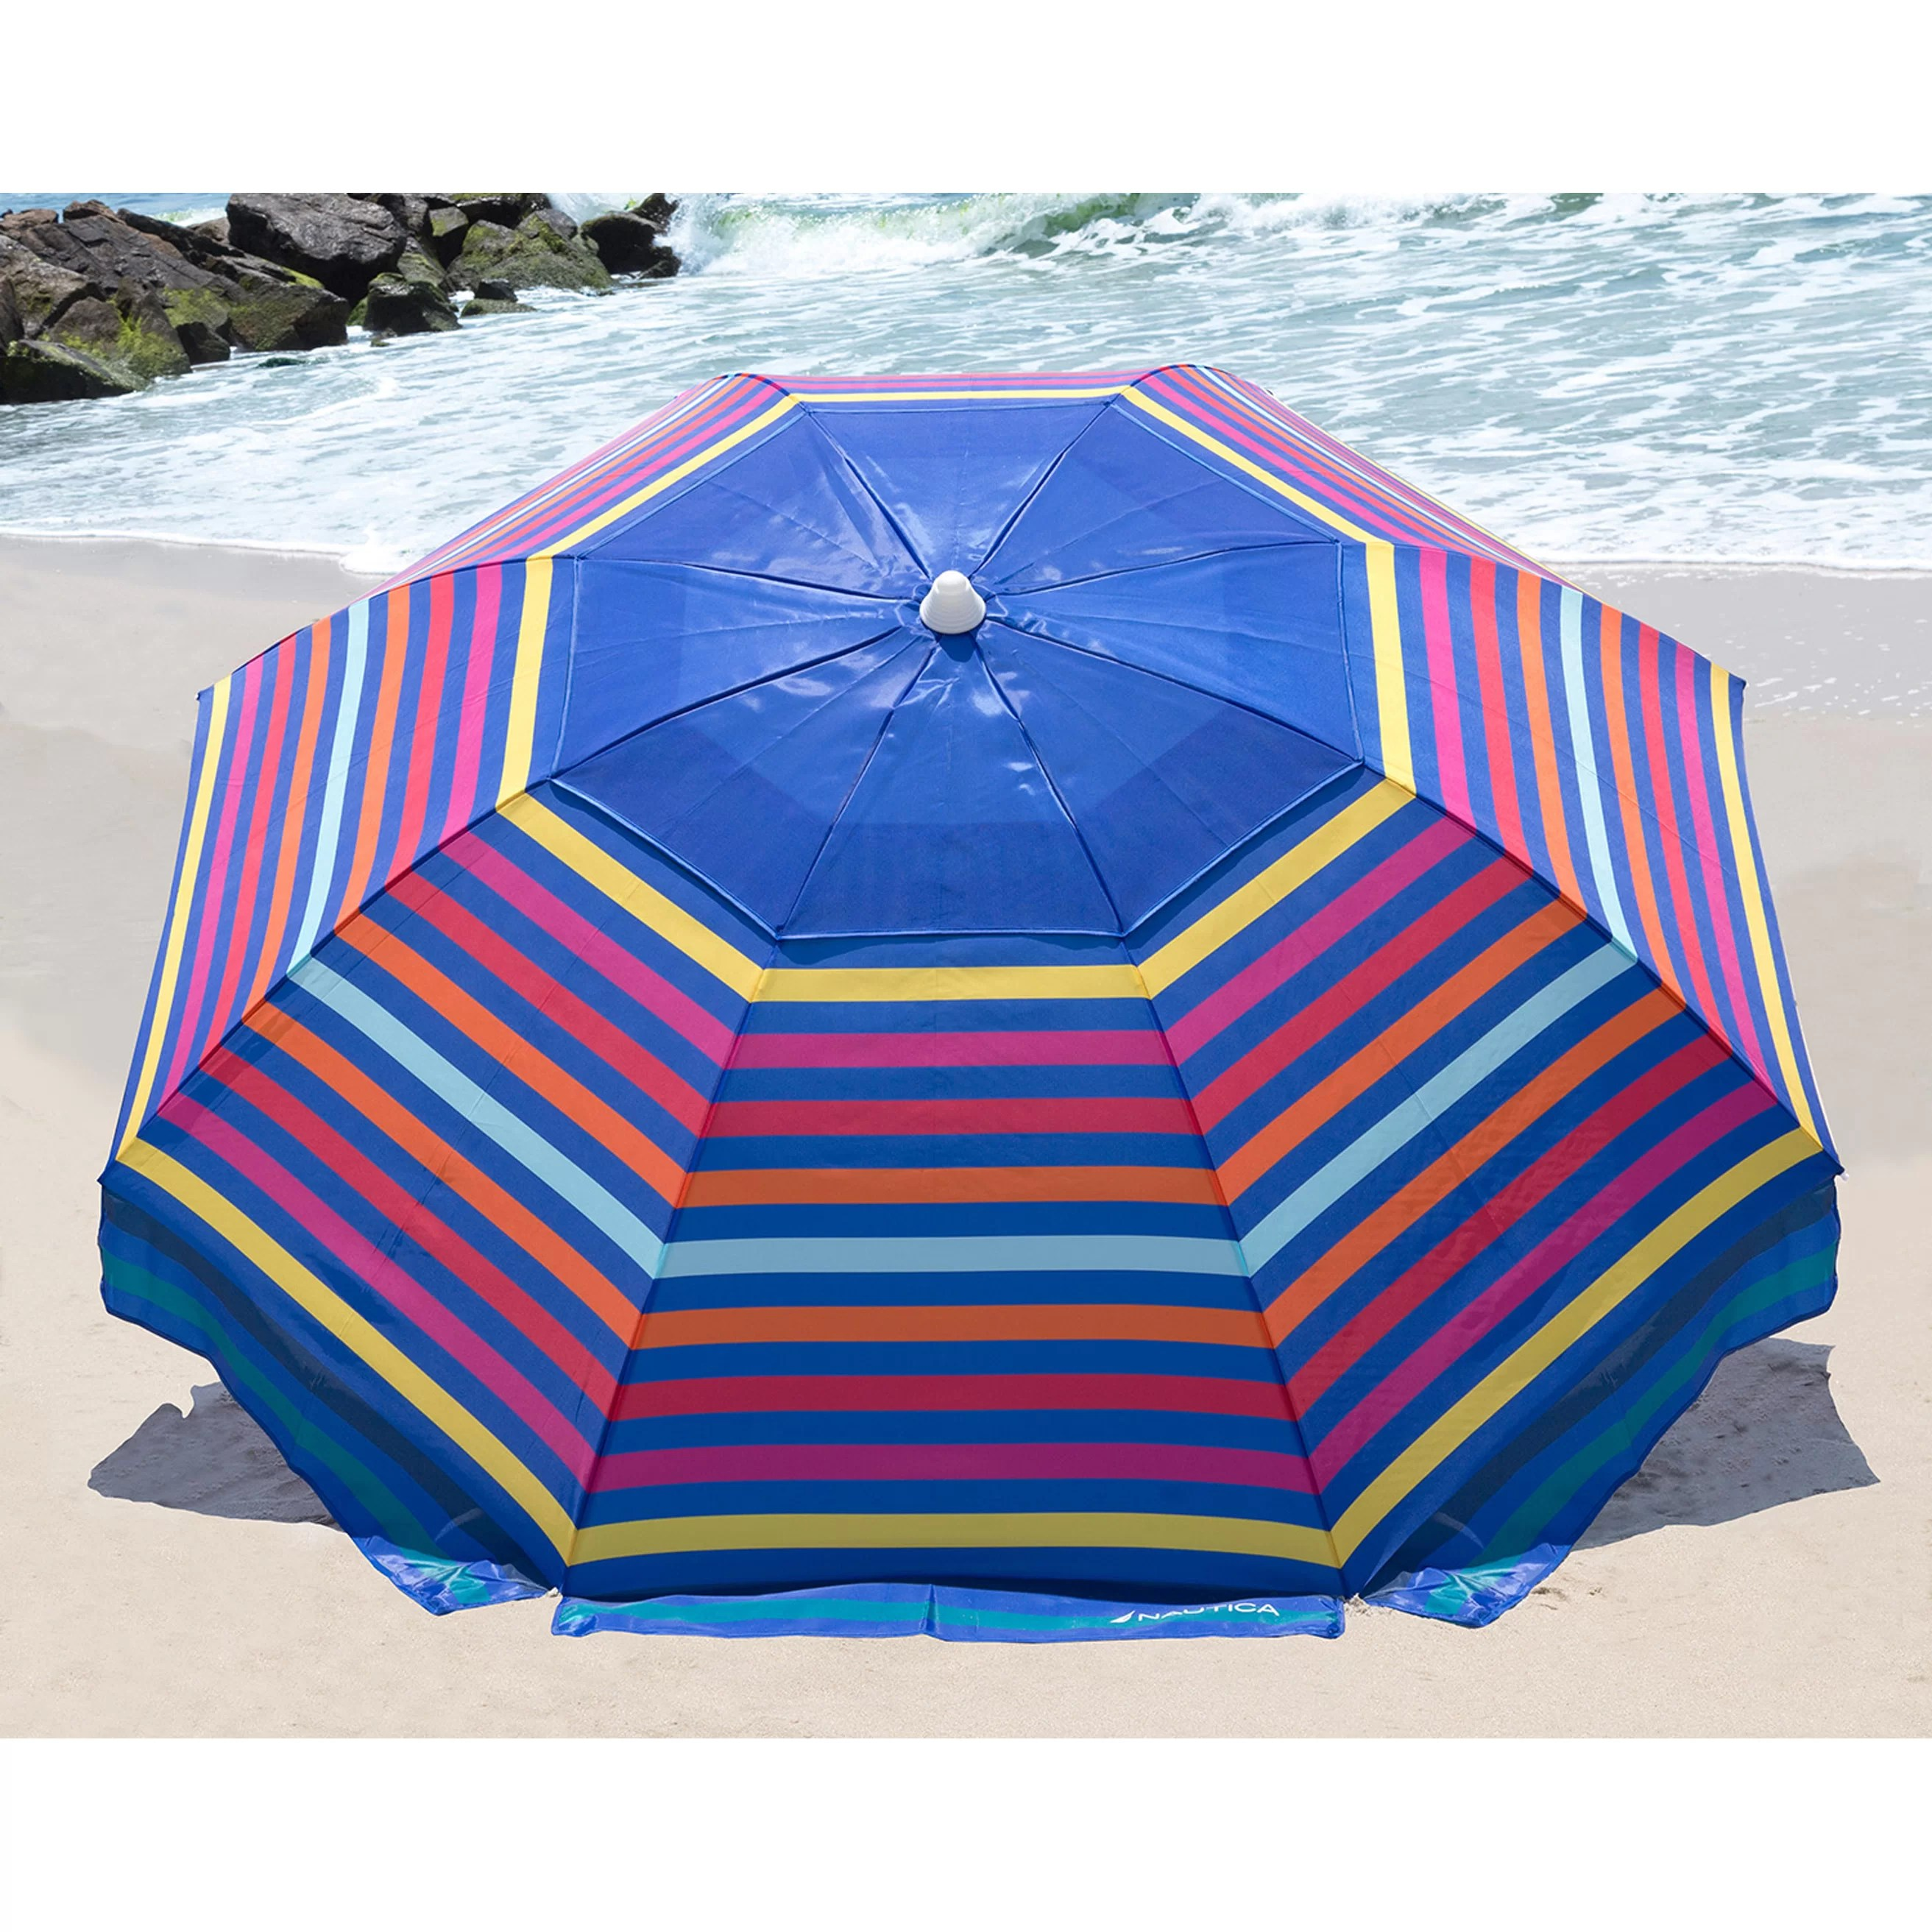 nautica beach chairs and umbrella pool chair floats target 10 must have items to help survive the summer metro us